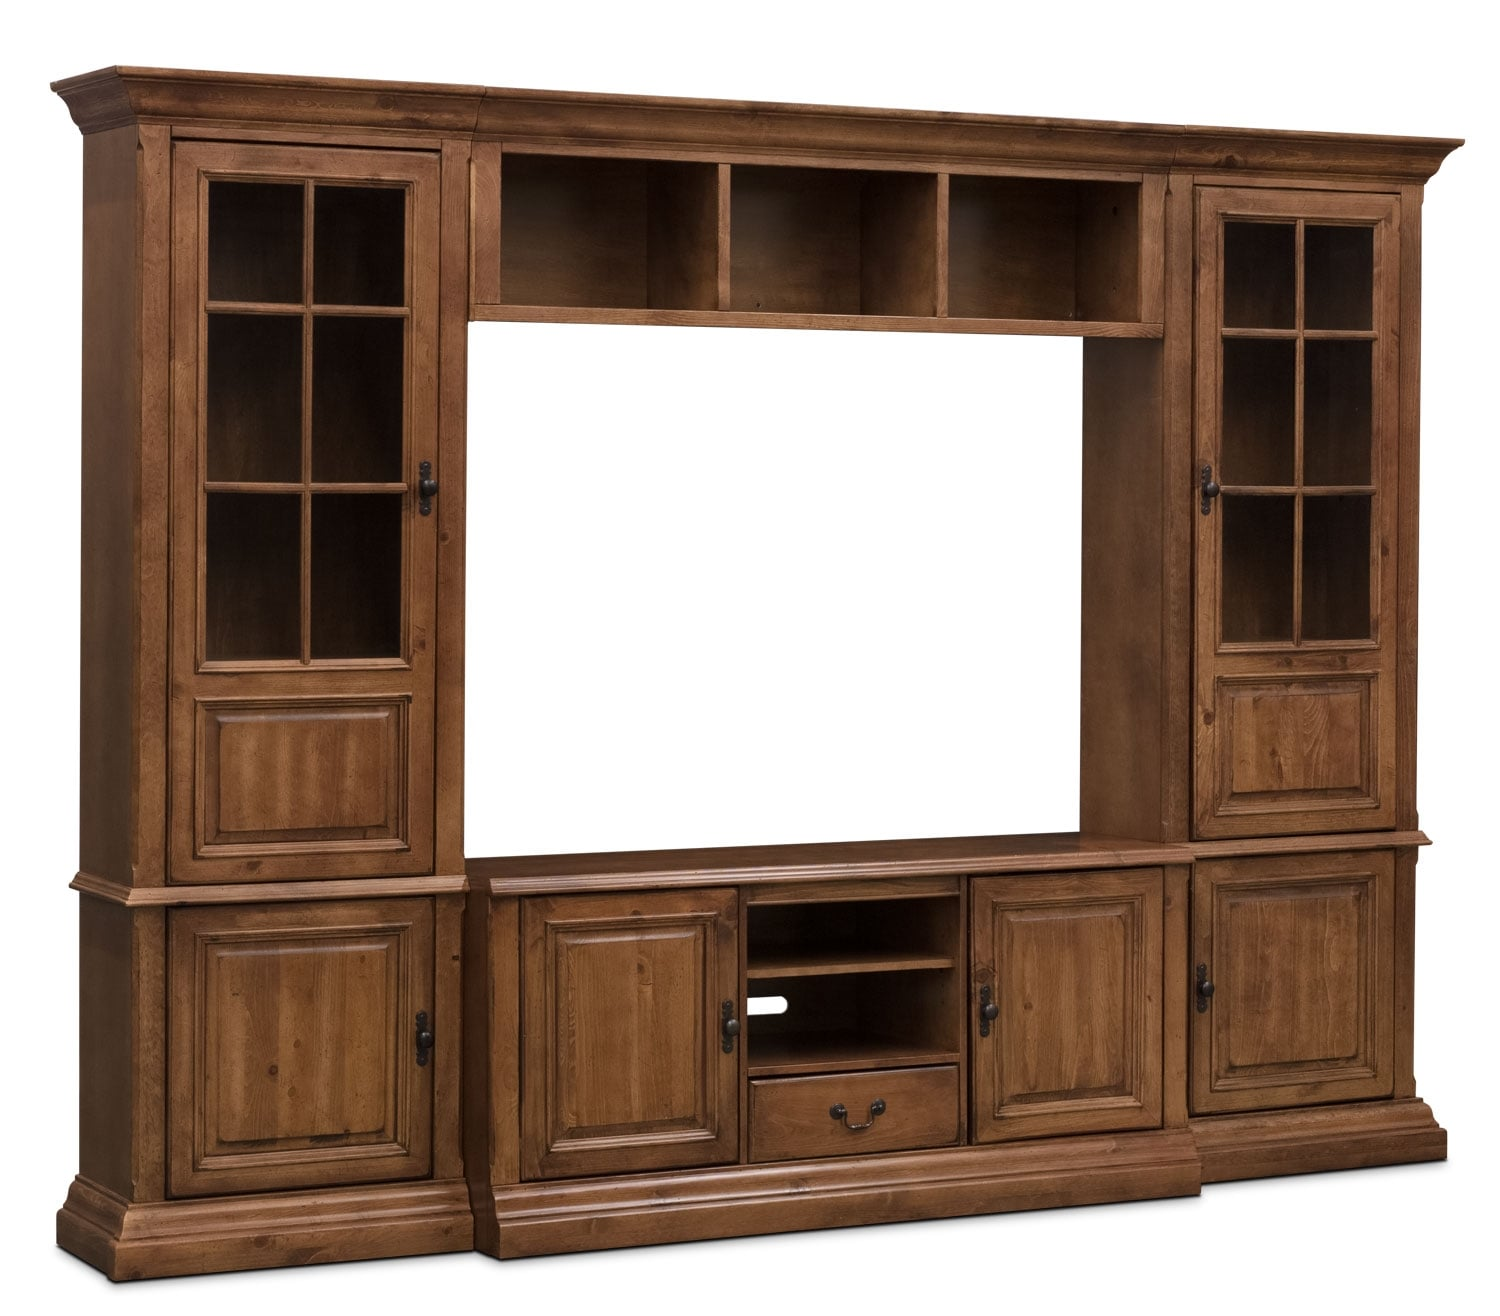 "Entertainment Furniture - Edgewood 4-Piece Display Entertainment Centre with 60"" TV Opening"